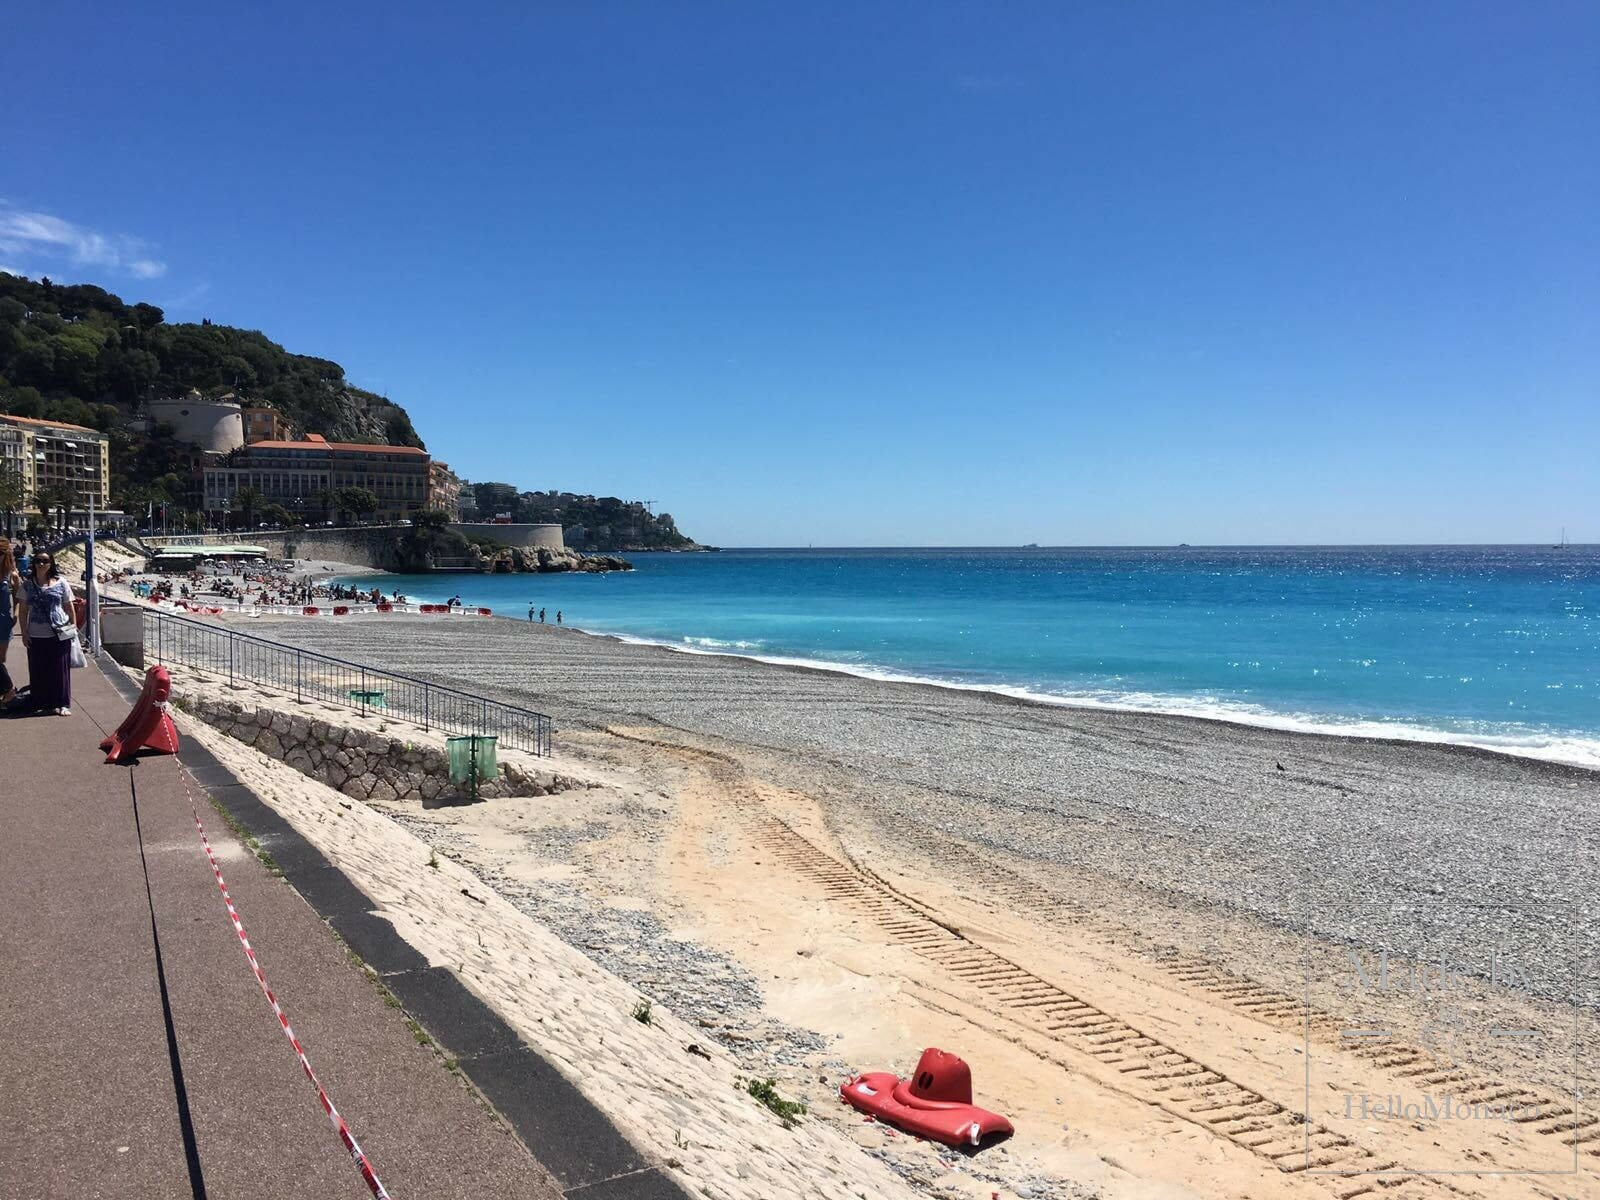 Photo of 250kg bomb found off the shores of Nice